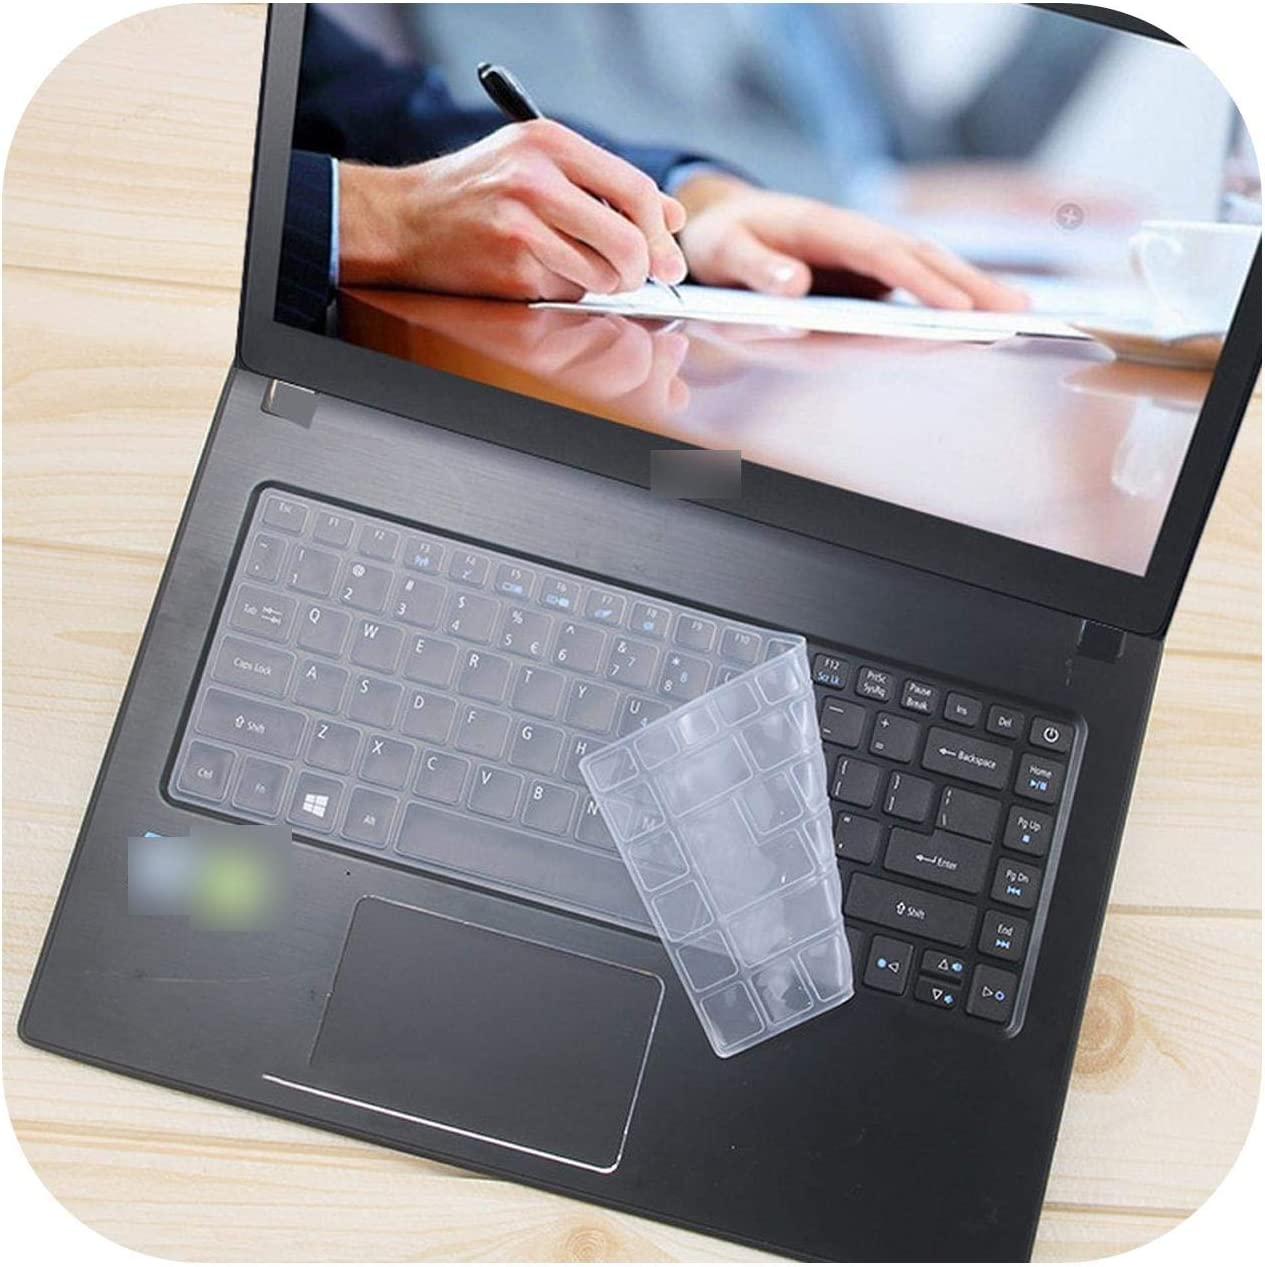 14 Inch Silicone Laptop Keyboard Cover Protector Skin for Acer Aspire Sf314 Tmp249 E5 475G Es1 433G K4000 E5 422G P648 Tmt40-Clear-